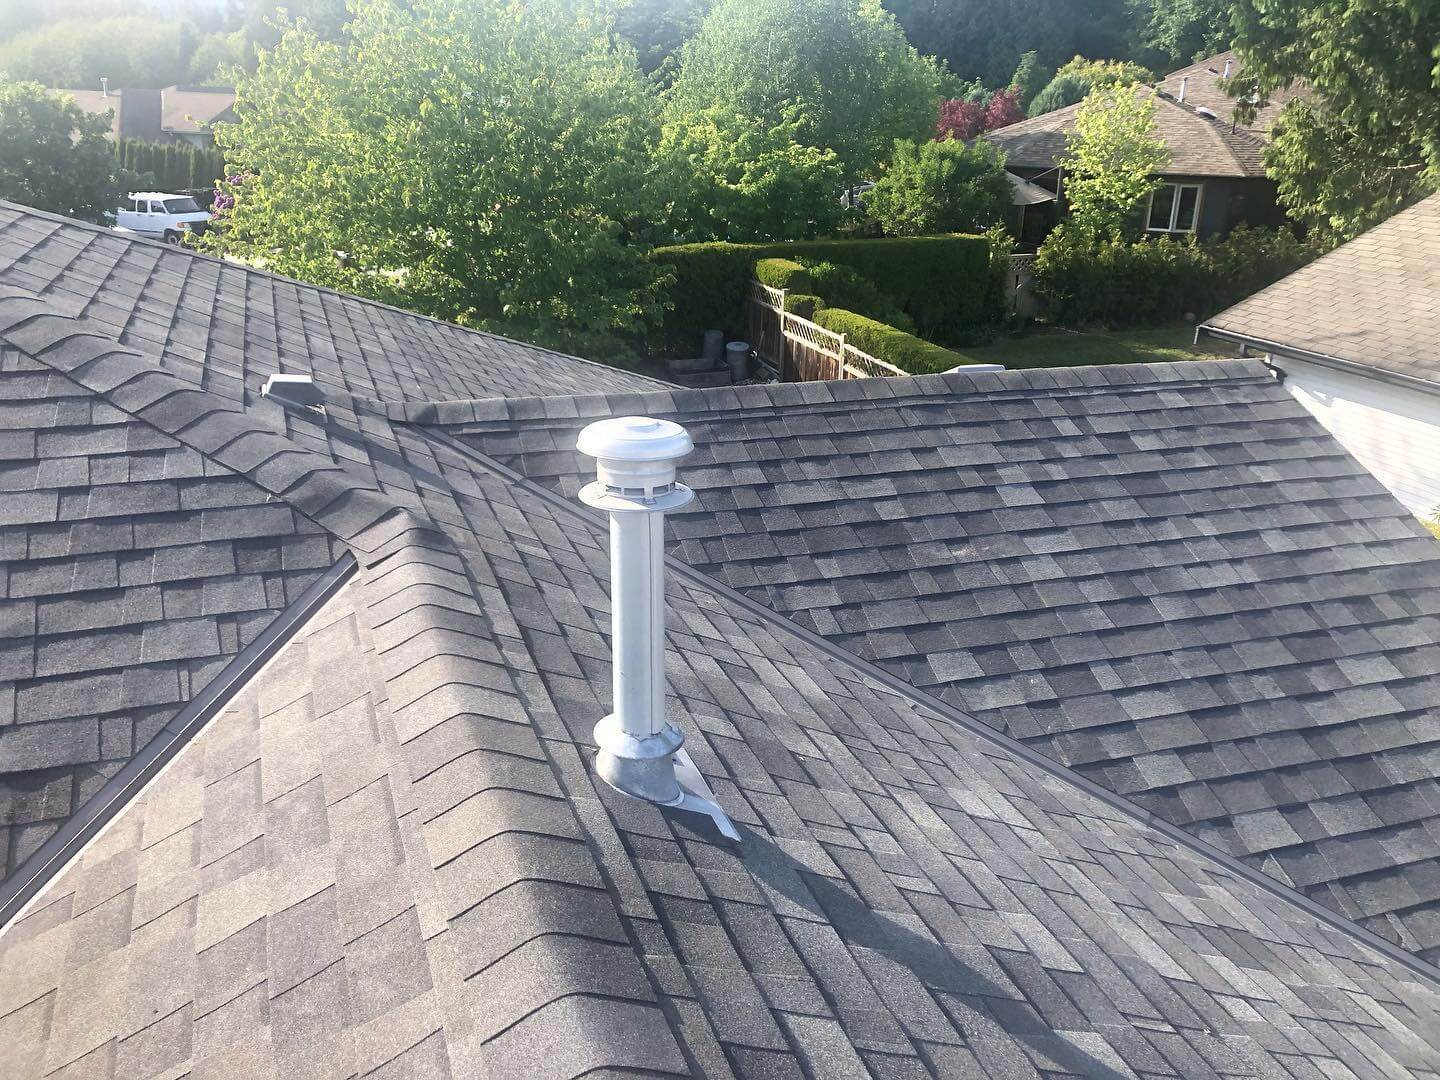 Residential roofing in Sechelt, BC